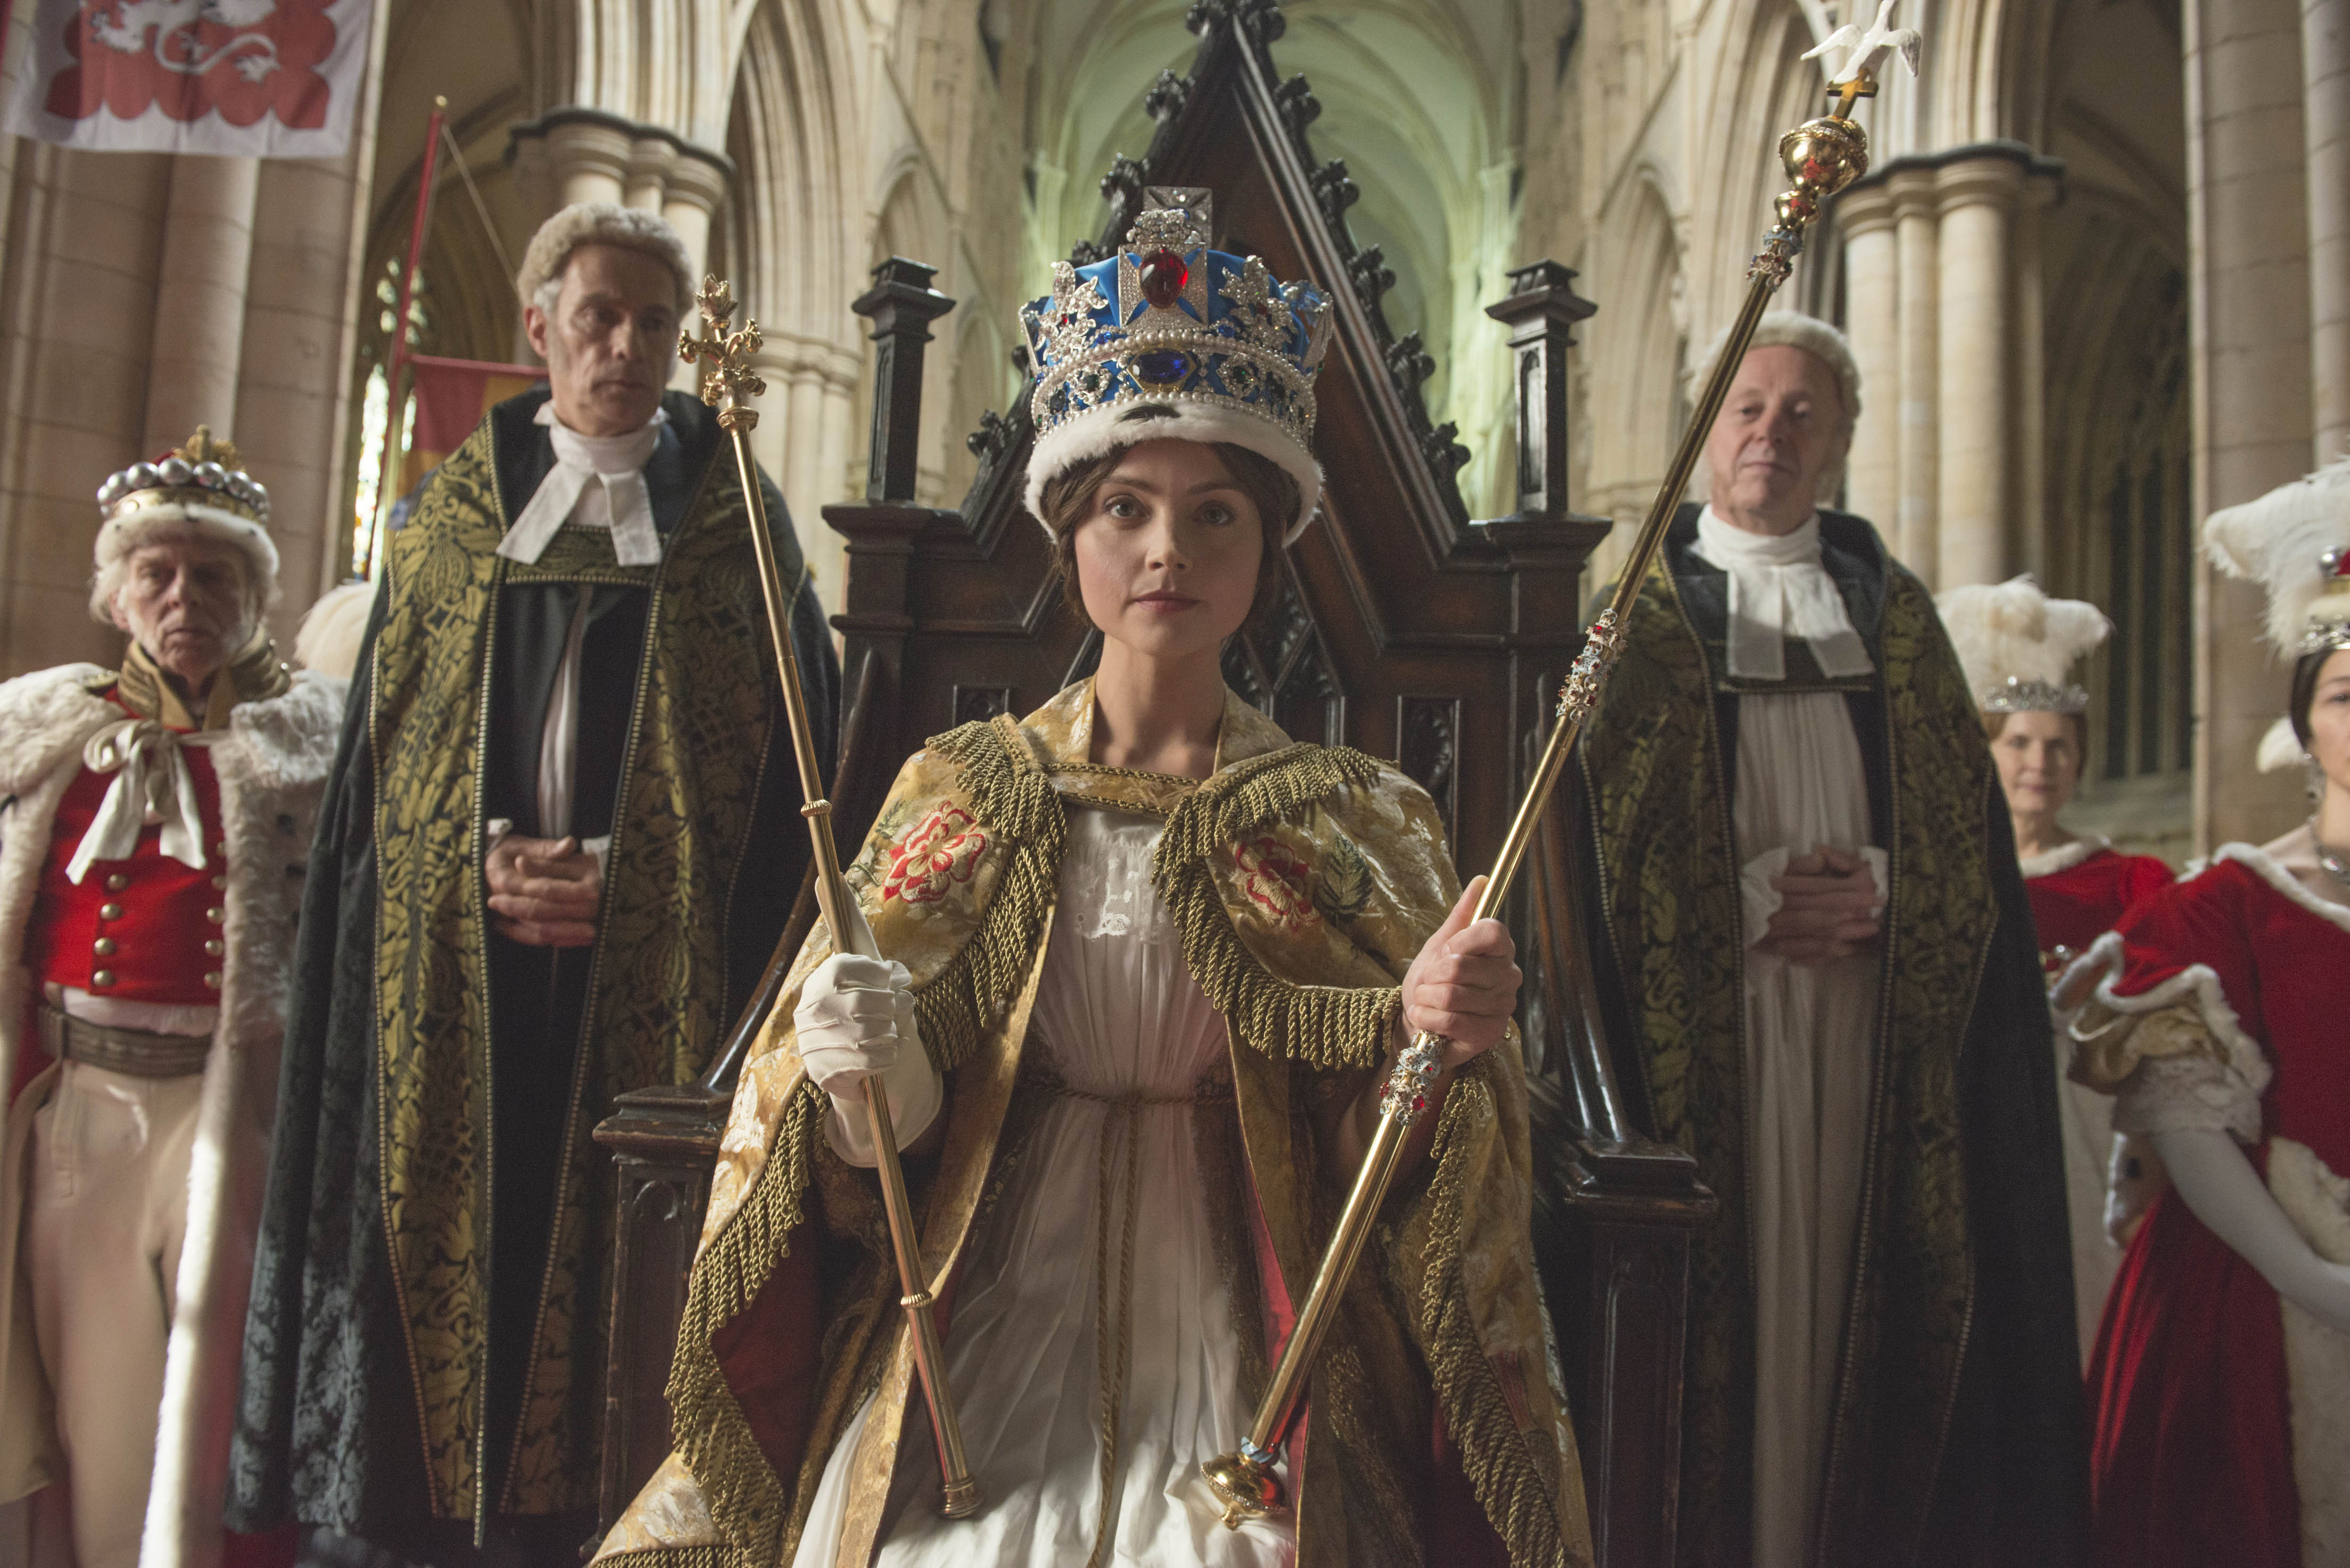 Victoria to return for a Christmas special (but it's not airing until 2017)